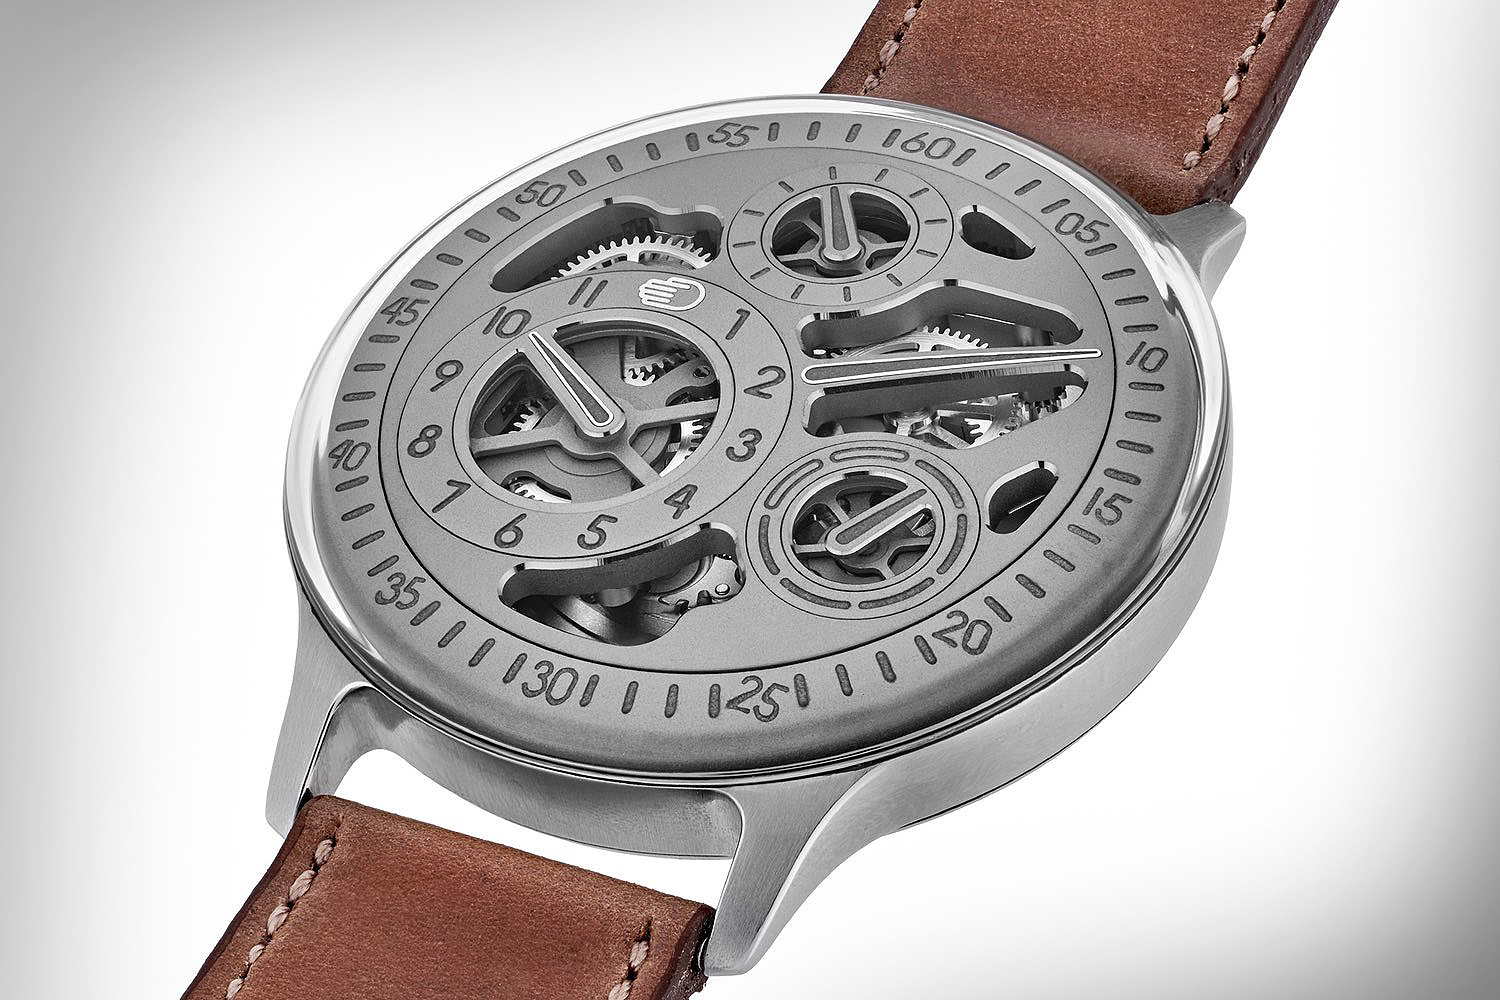 Hodinkee Ressence TYPE 1 Limited Edition